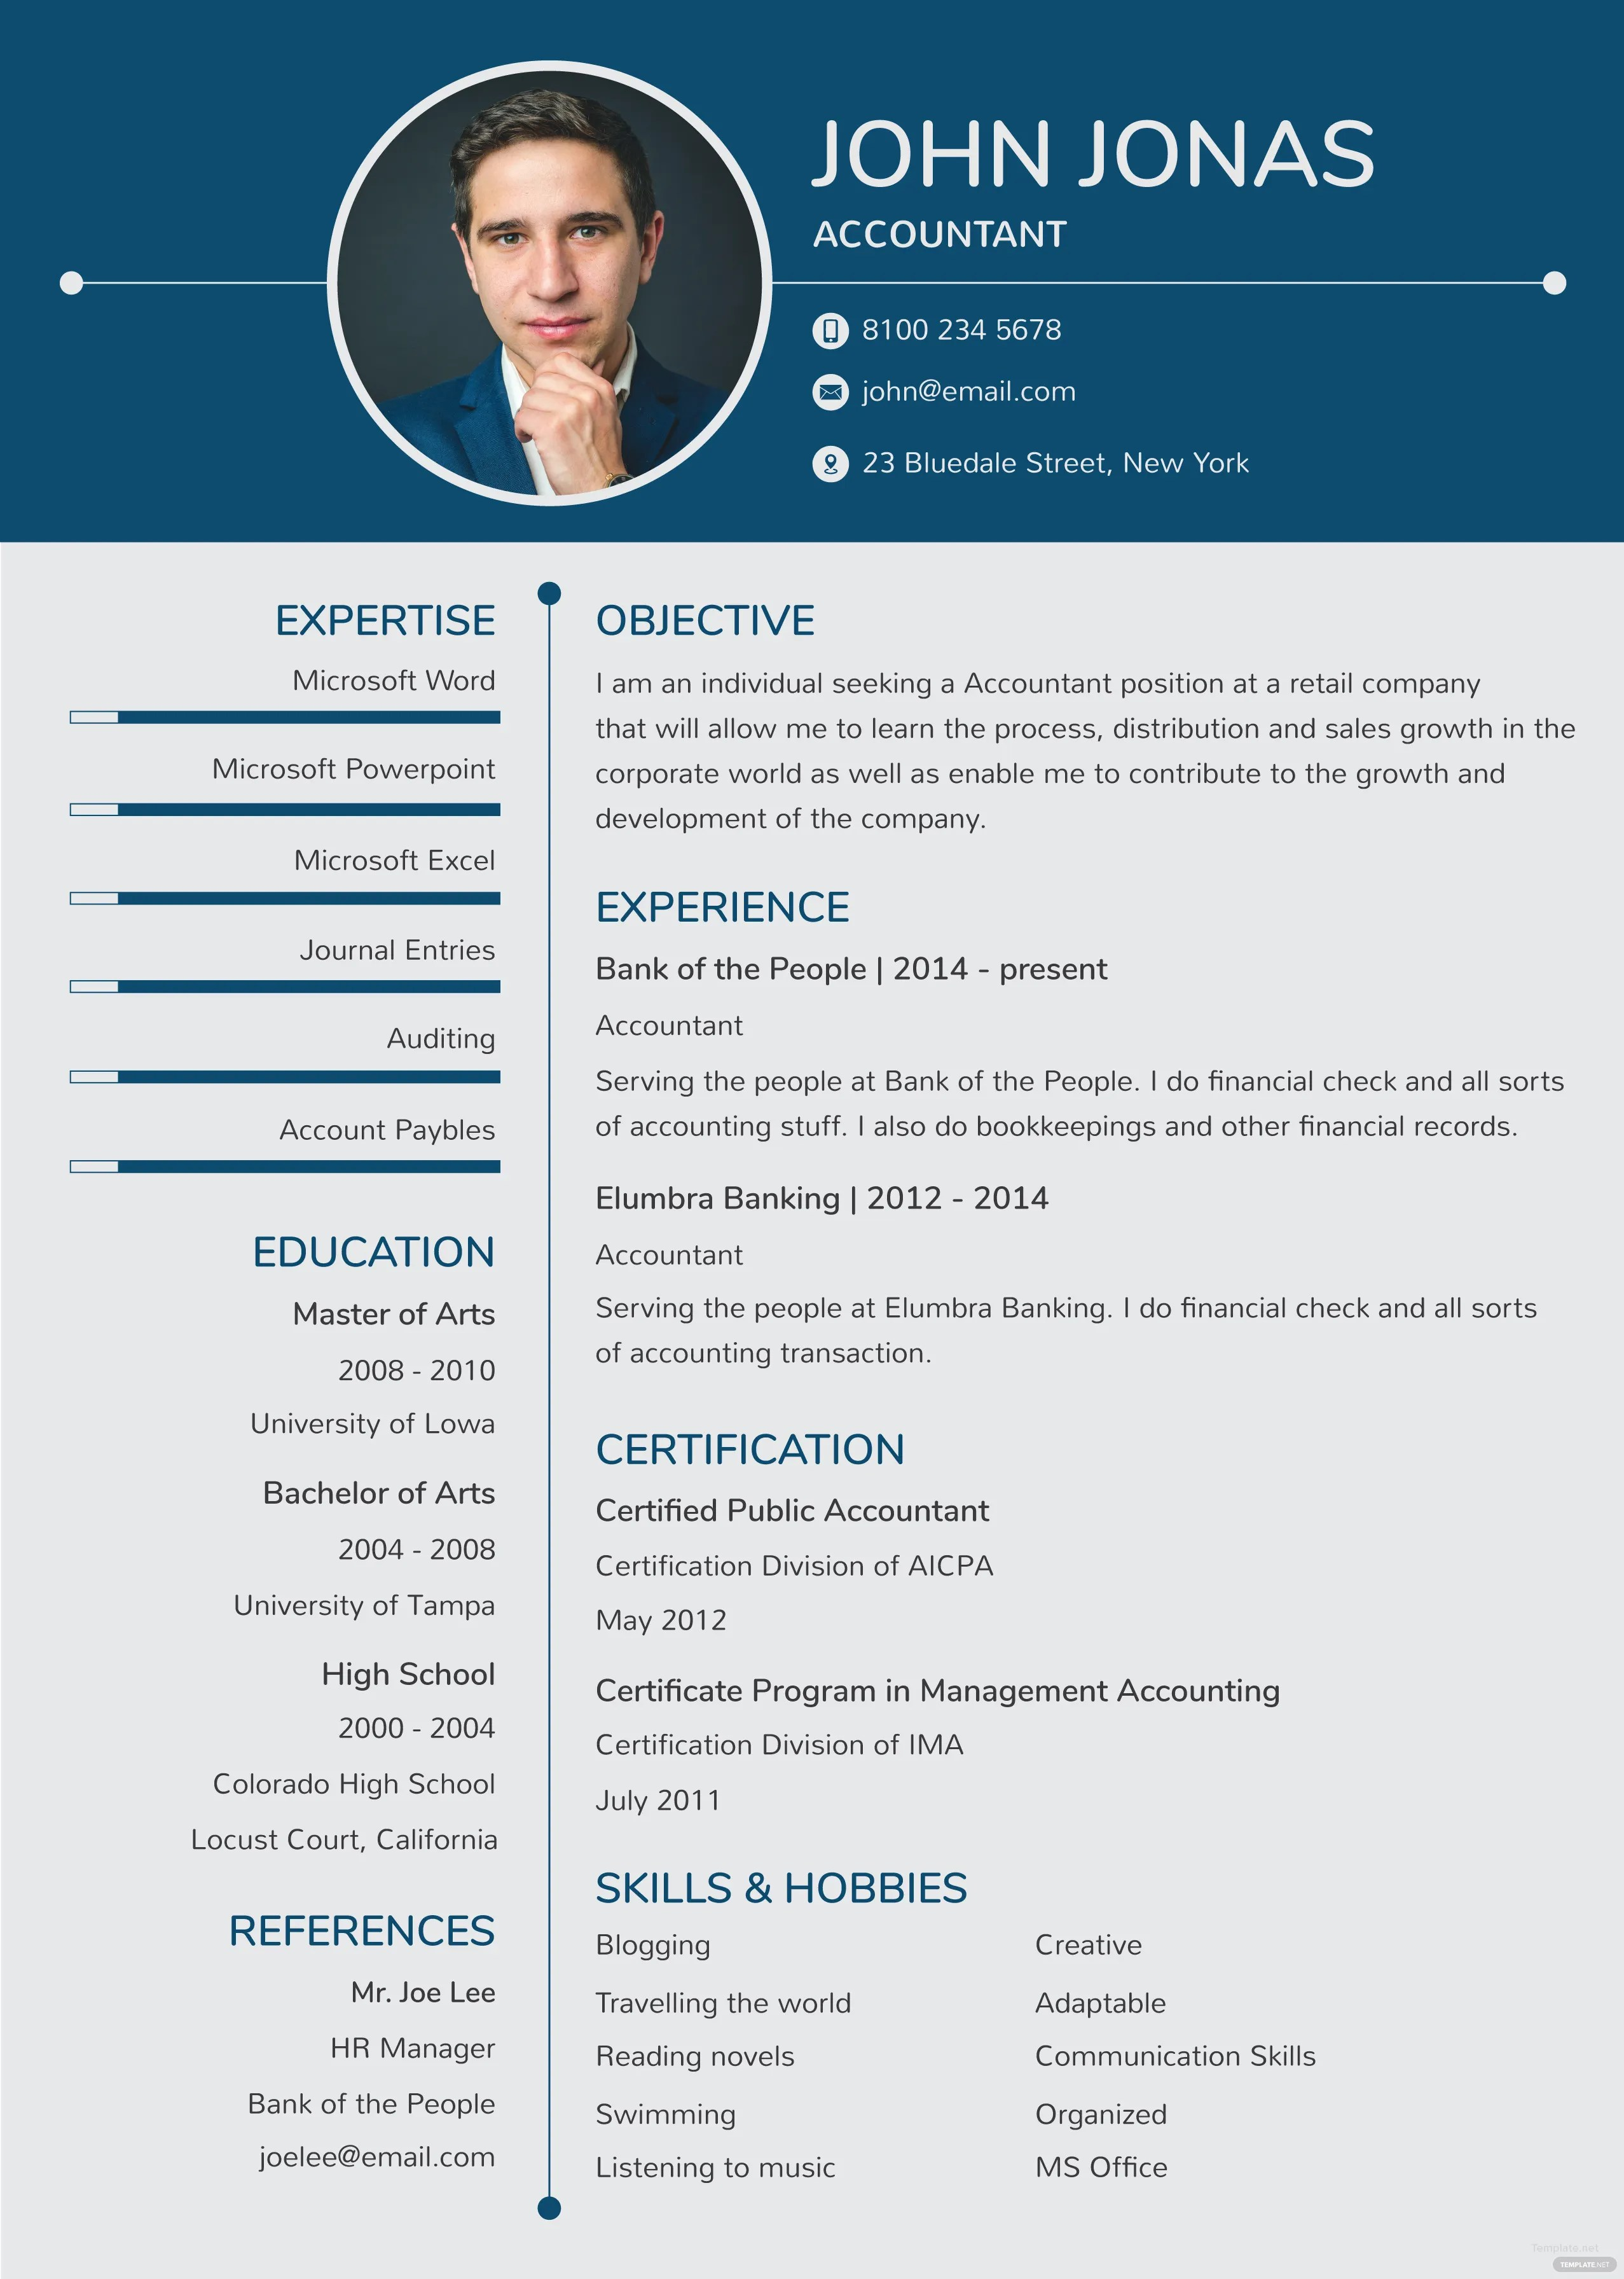 Free Banking Resume And Cv Template In Adobe Photoshop